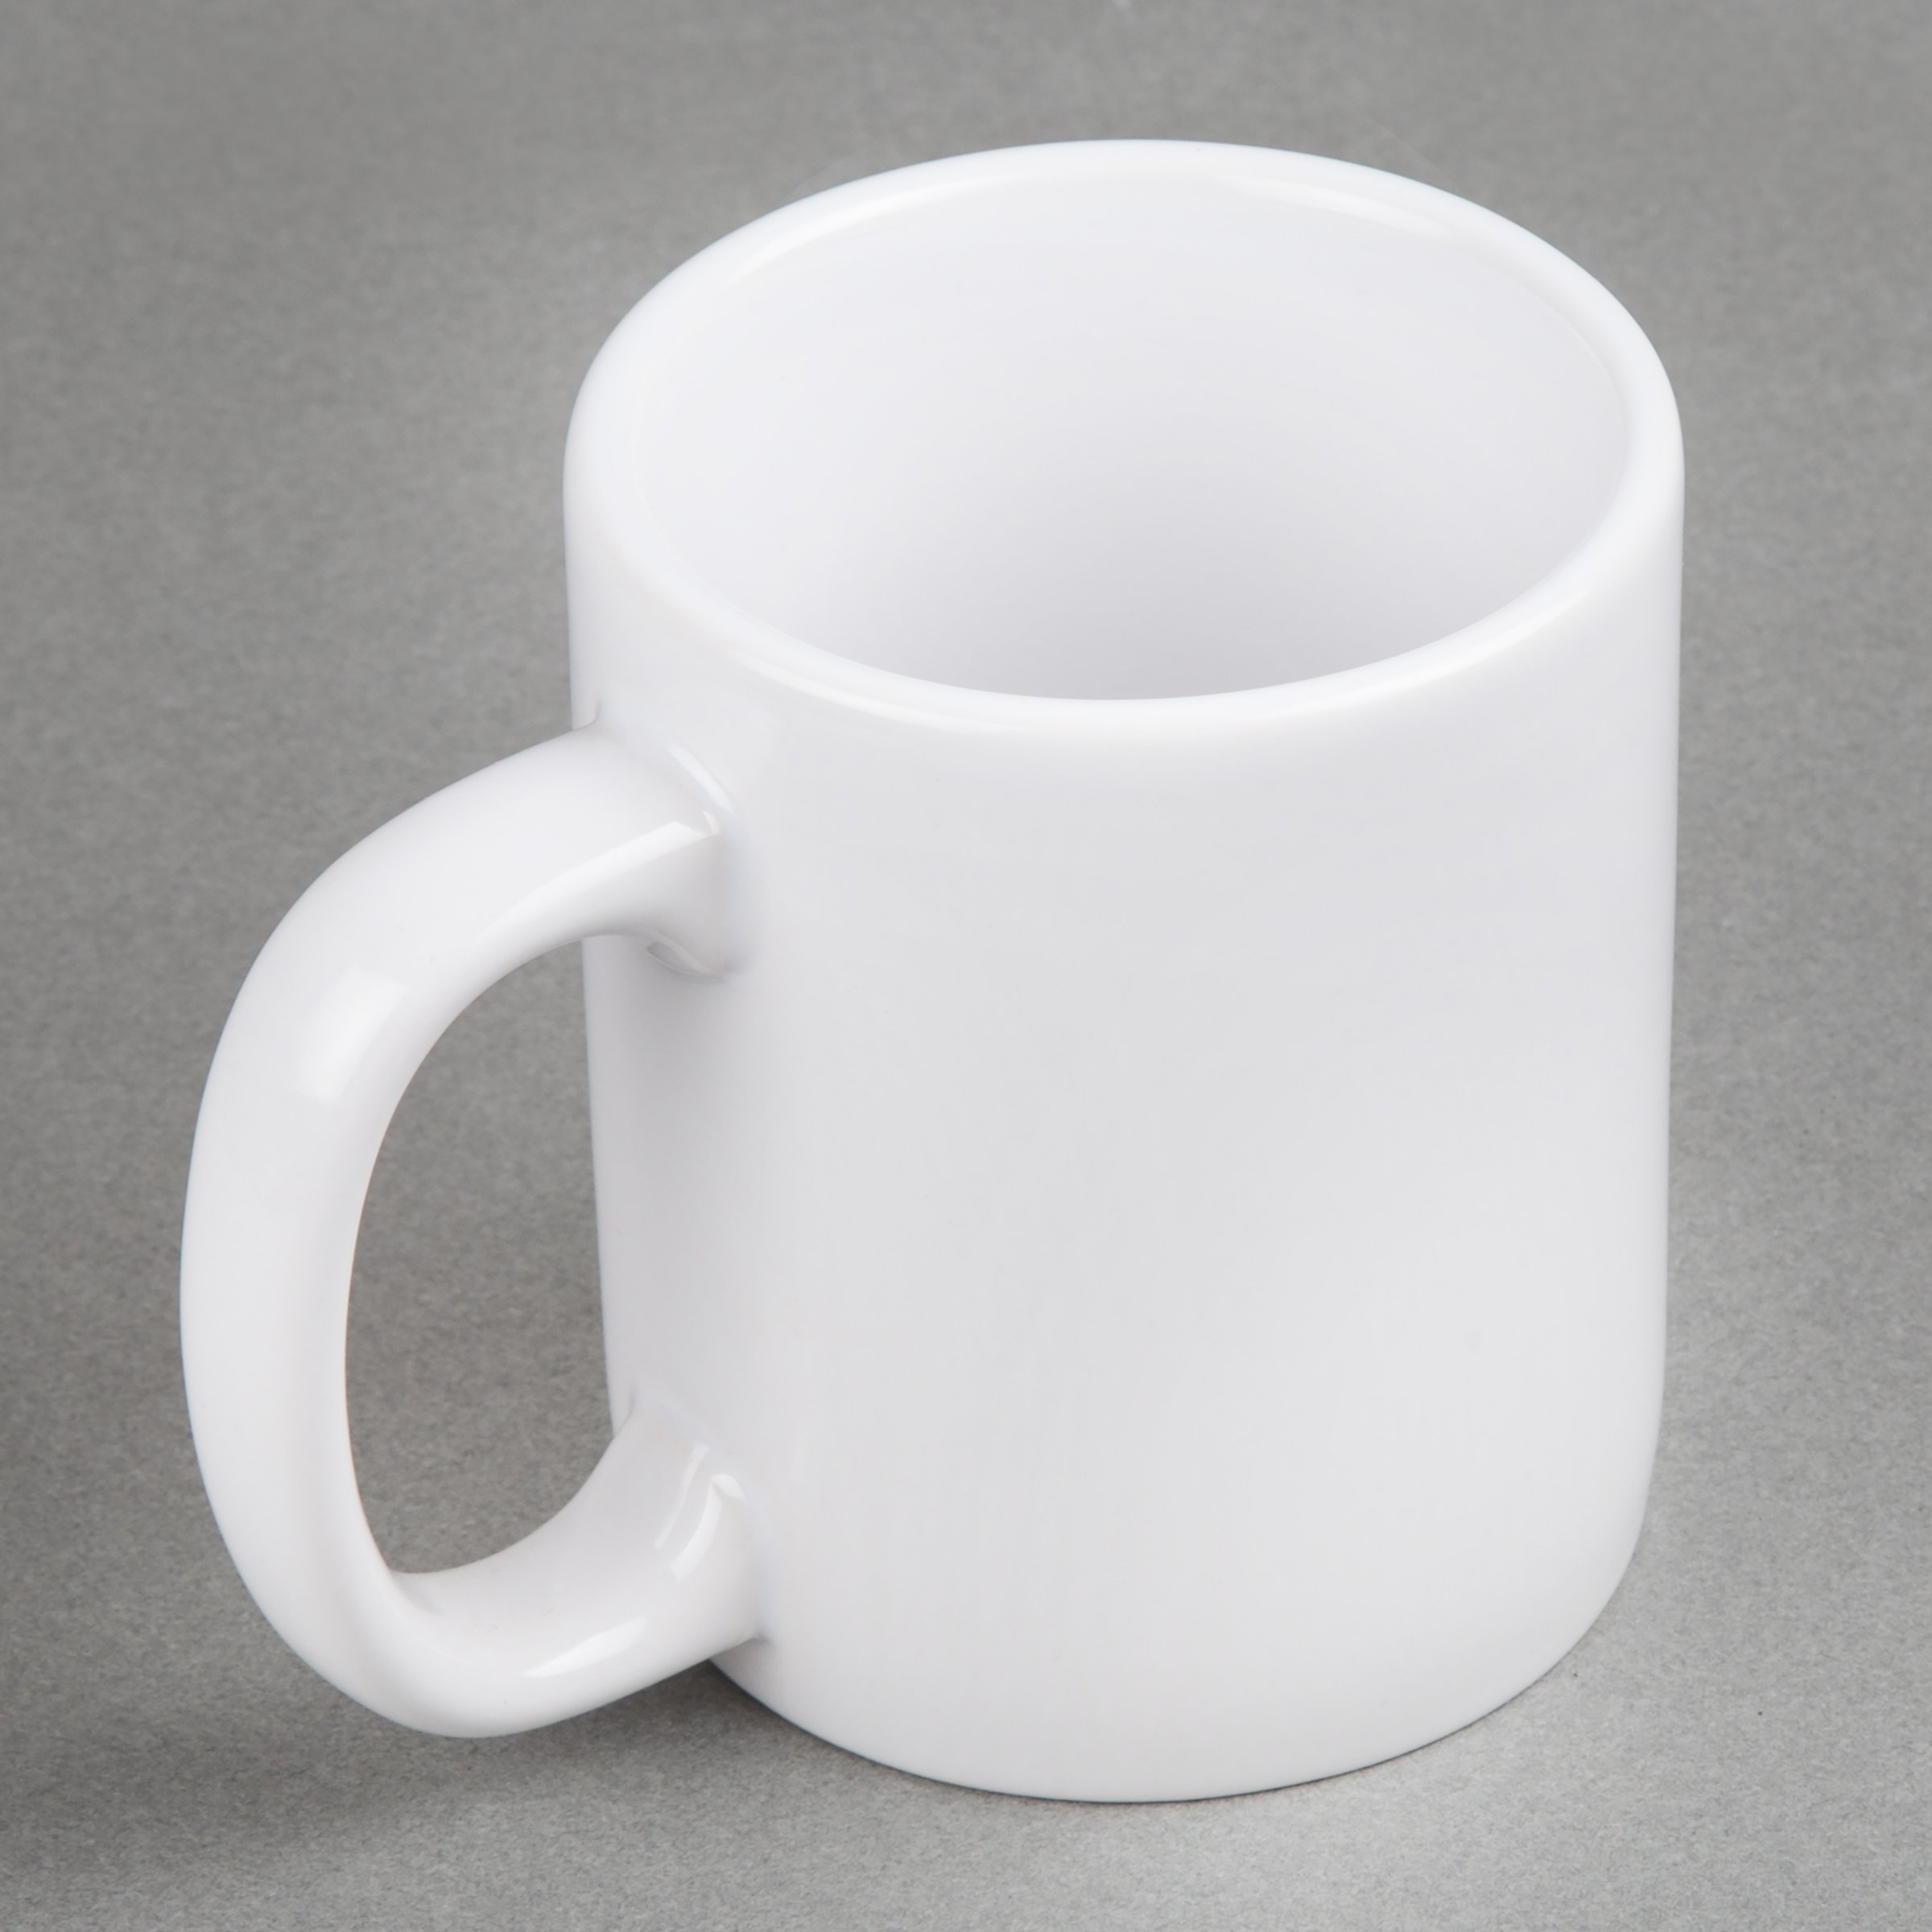 Creative Home 85355 Set of 6 Piece, 12 Oz Ceramic Coffee Mug Tea Cup, 3-1/4'' D x 4'' H, White by Creative Home (Image #4)